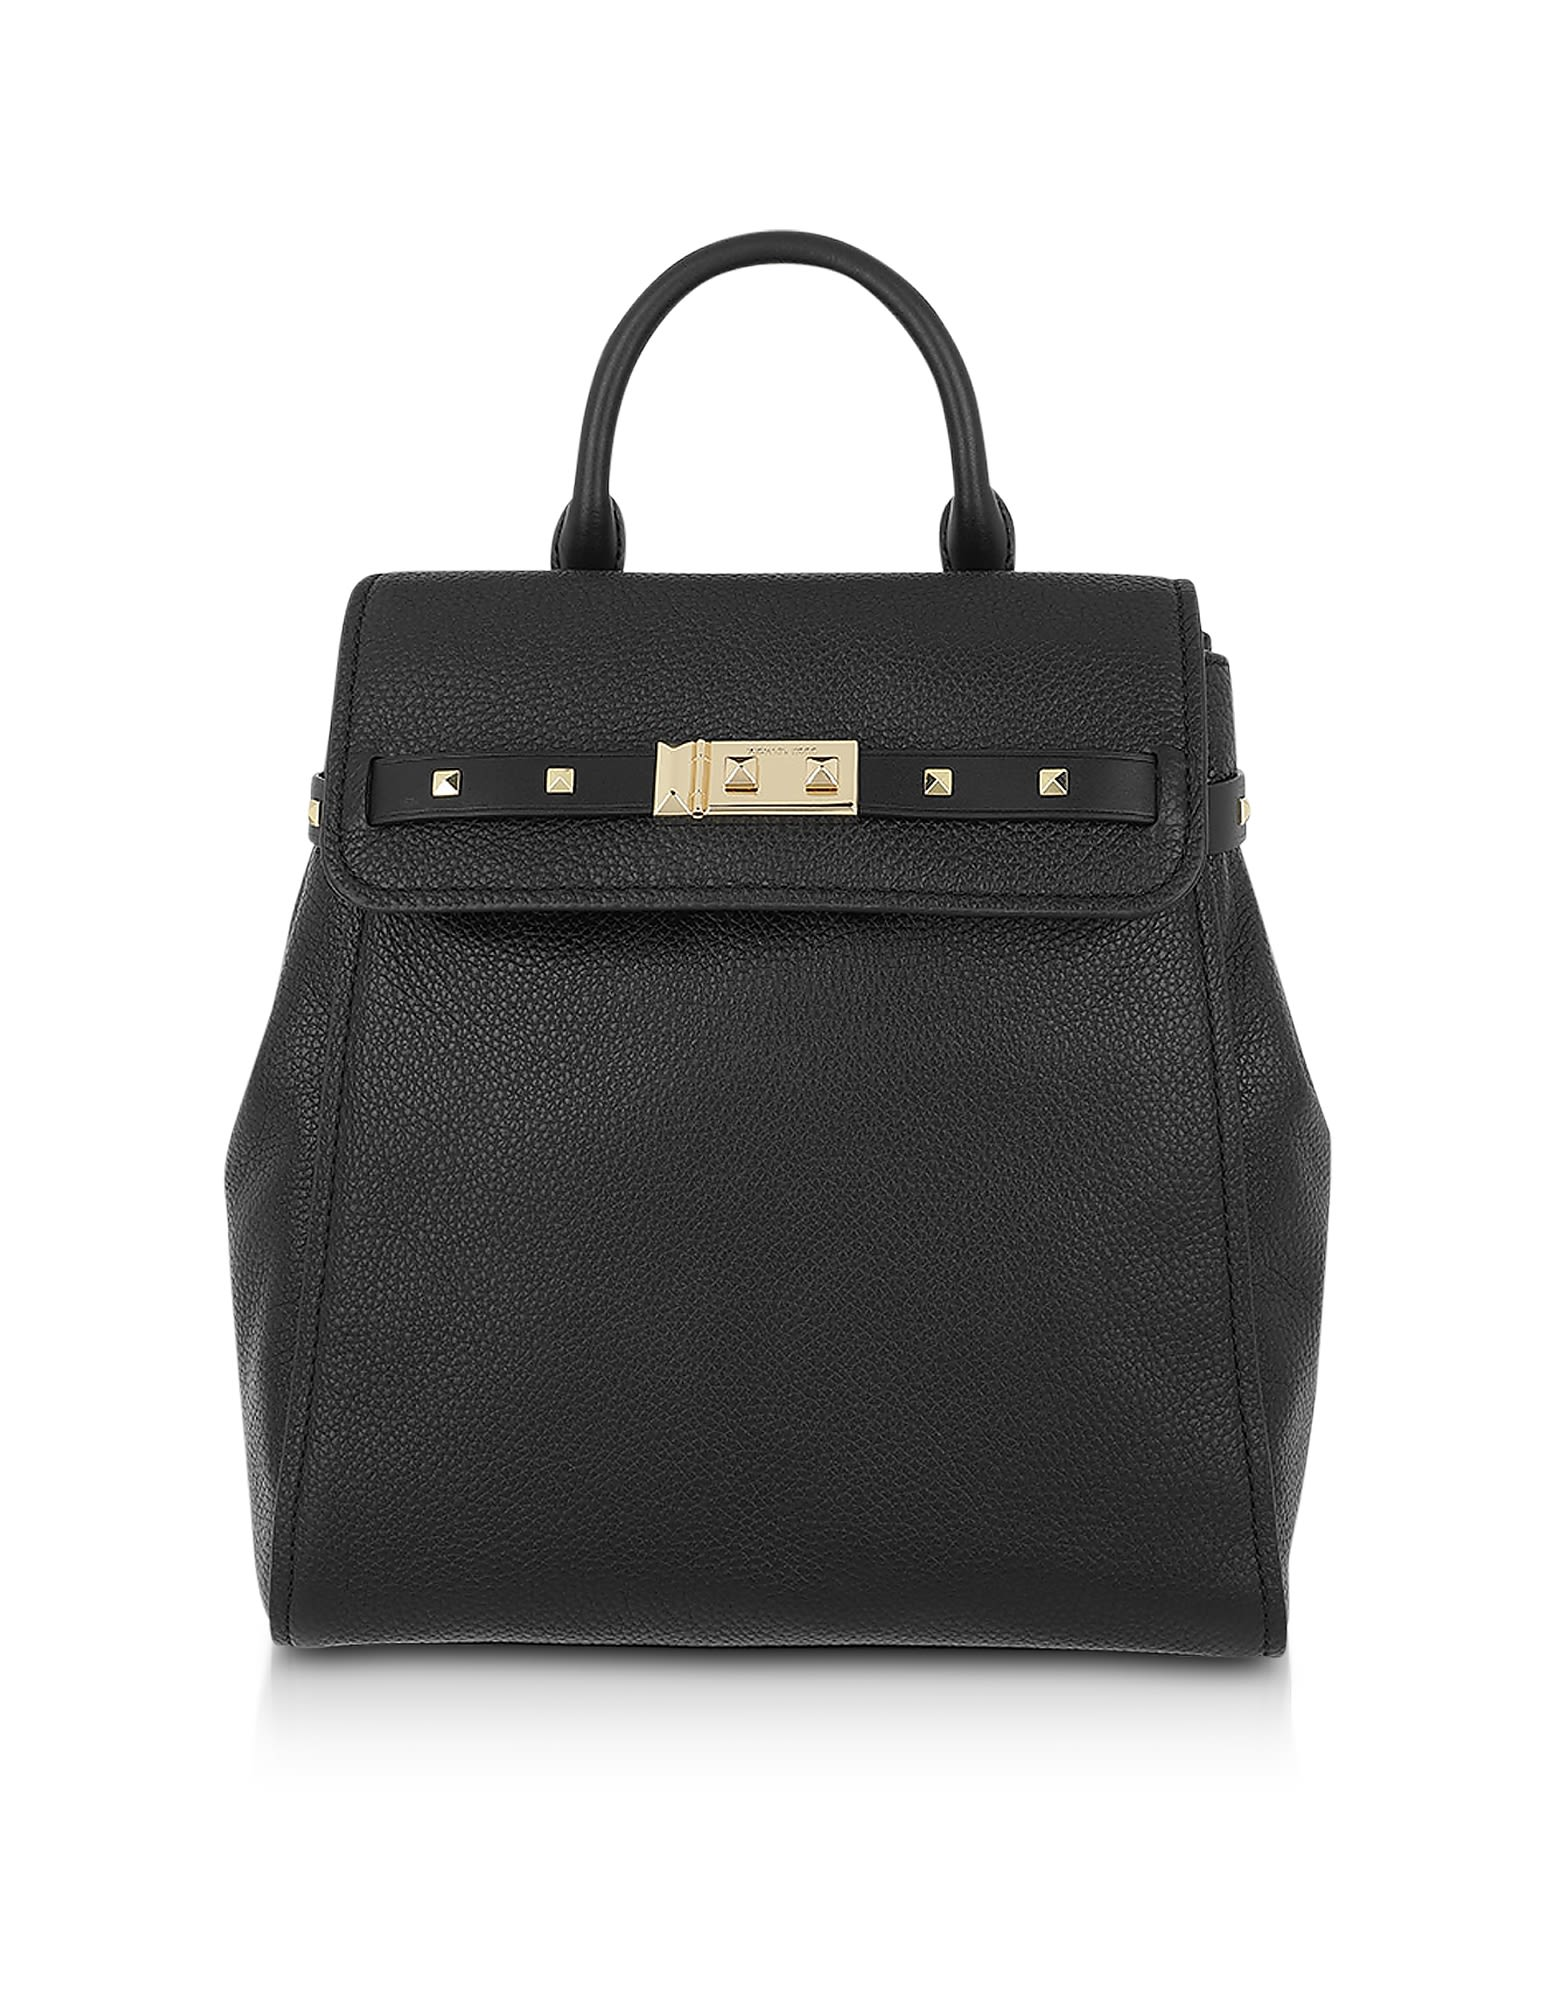 Michael Kors Black Pebbled Leather Addison Backpack